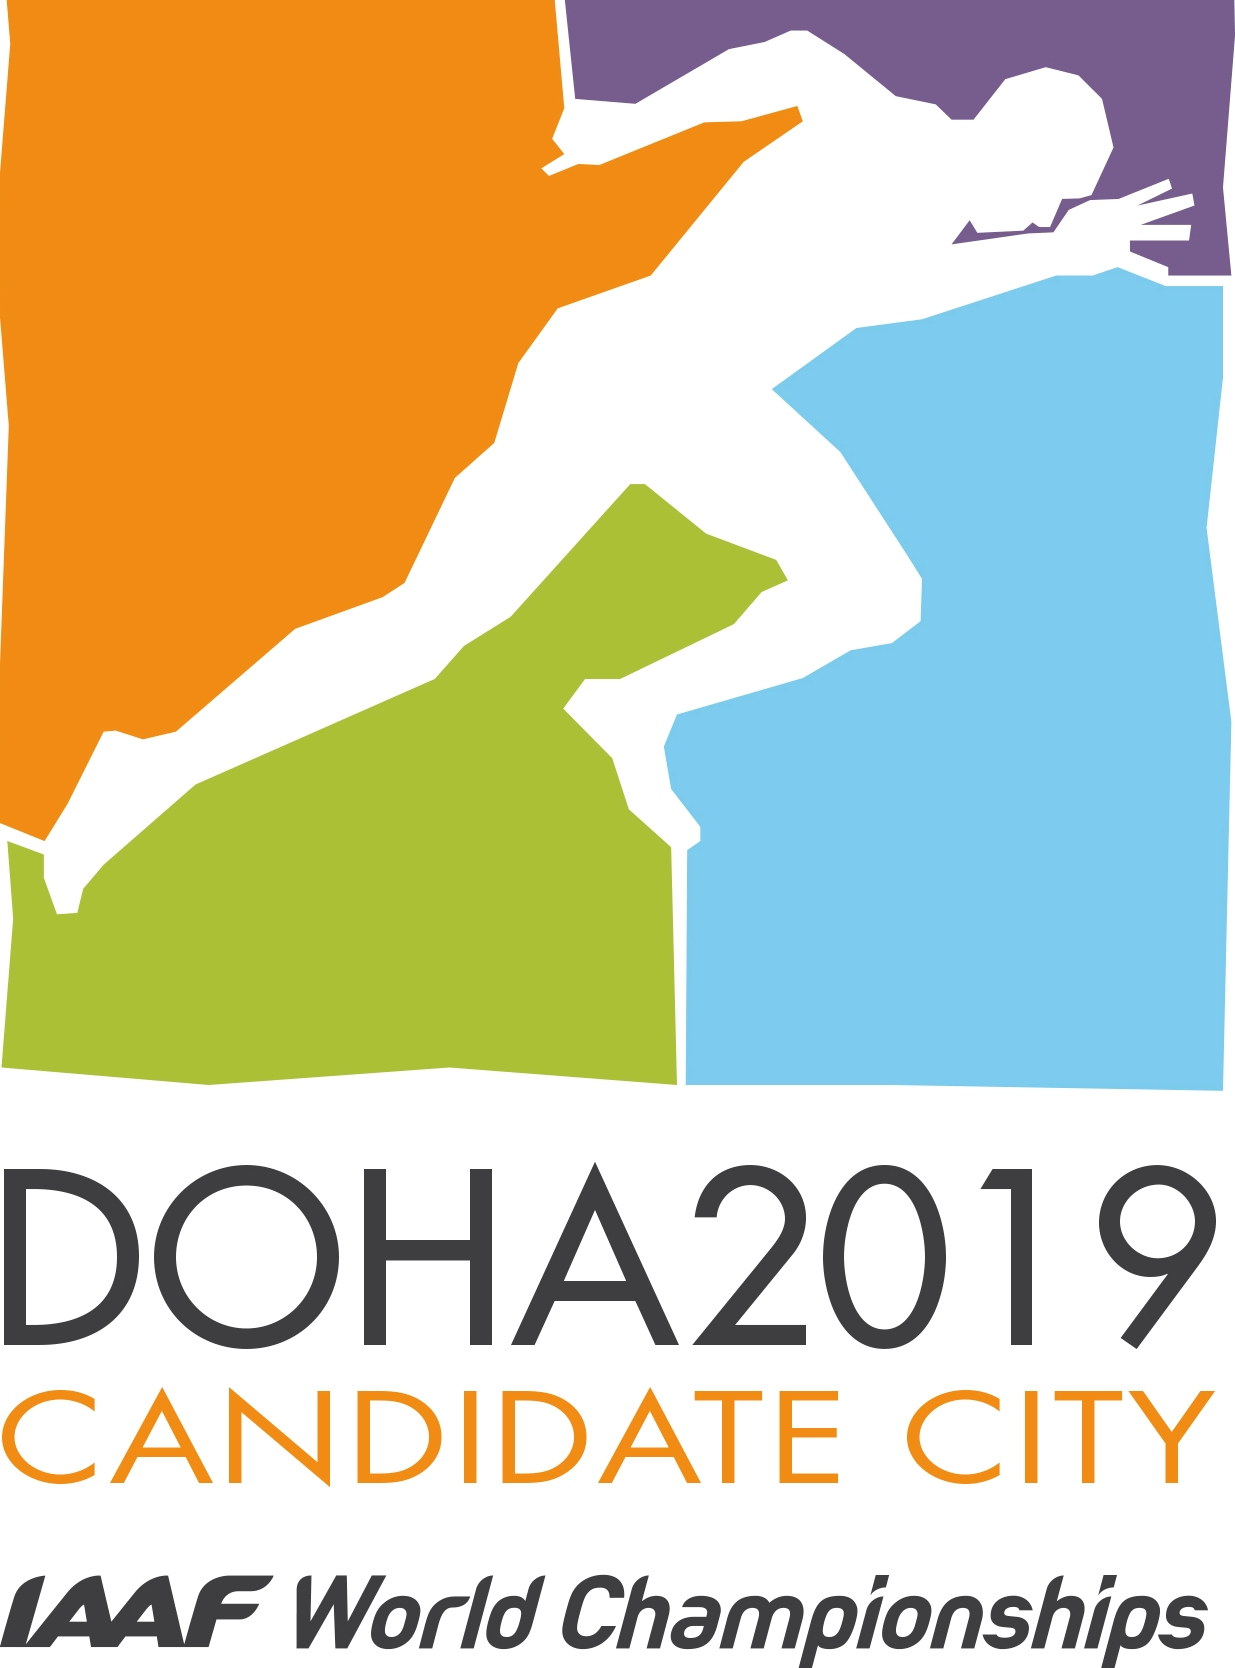 Doha will face rivals Barcelona and Eugene in its bid to host the 2019 IAAF World Championships ©Doha 2019